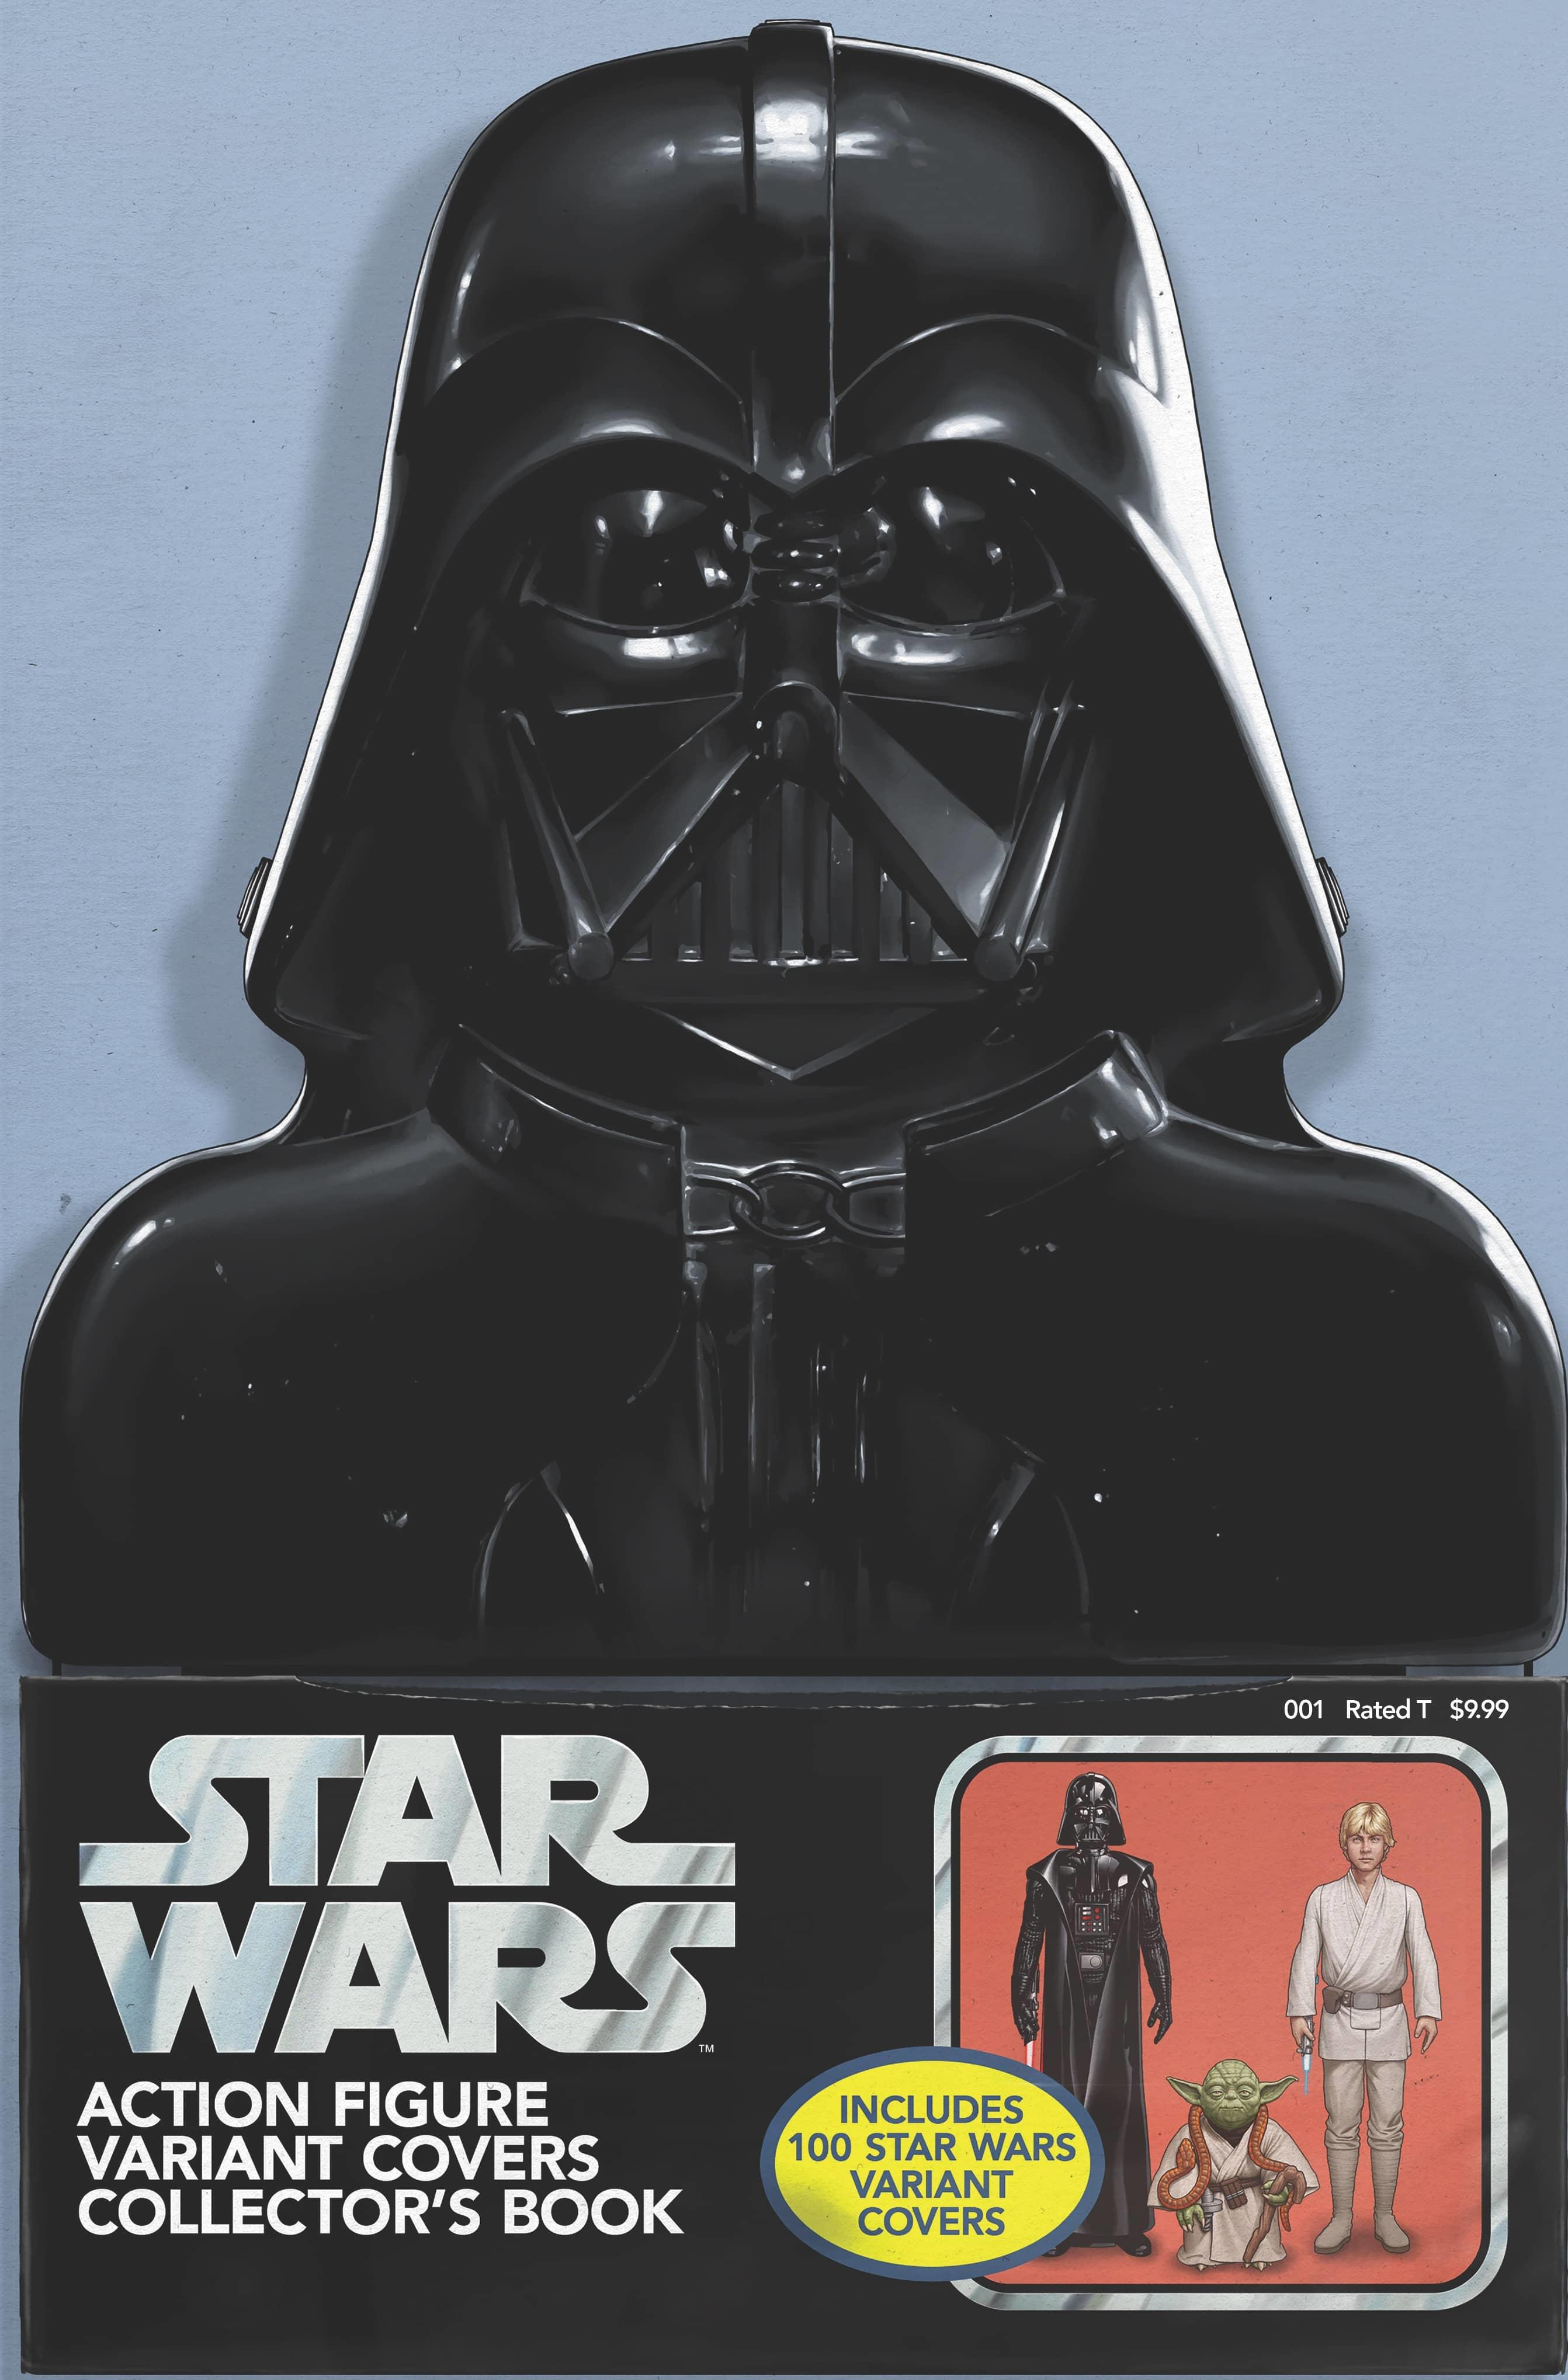 Star Wars: The Action Figure Variant Covers #1 (29.04.2020)